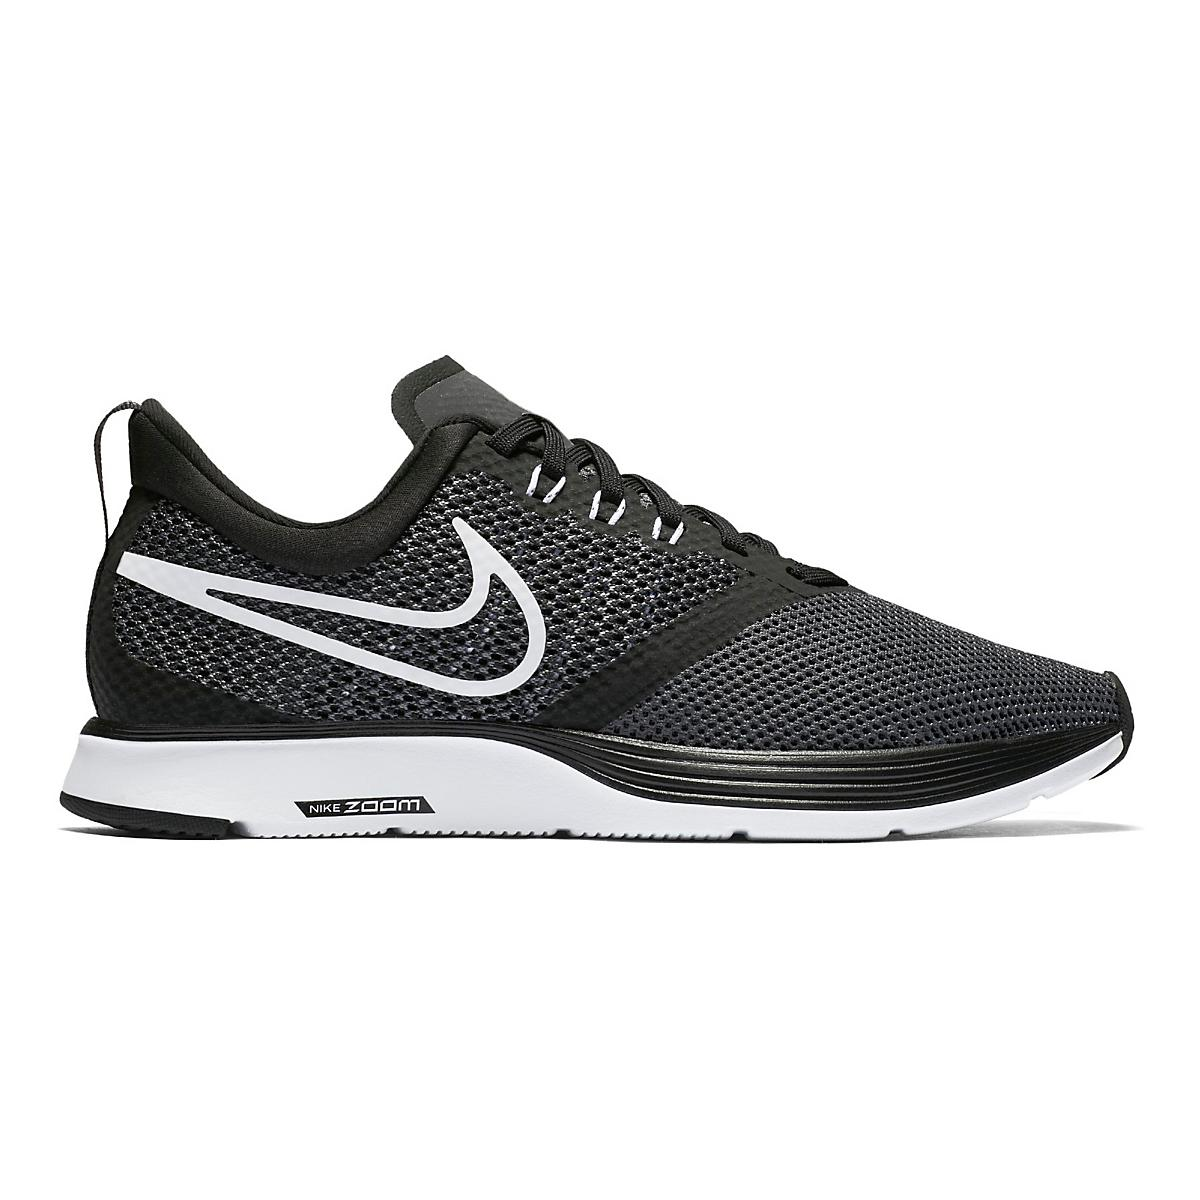 deaa31c98e239 Womens Nike Zoom Strike Running Shoe at Road Runner Sports